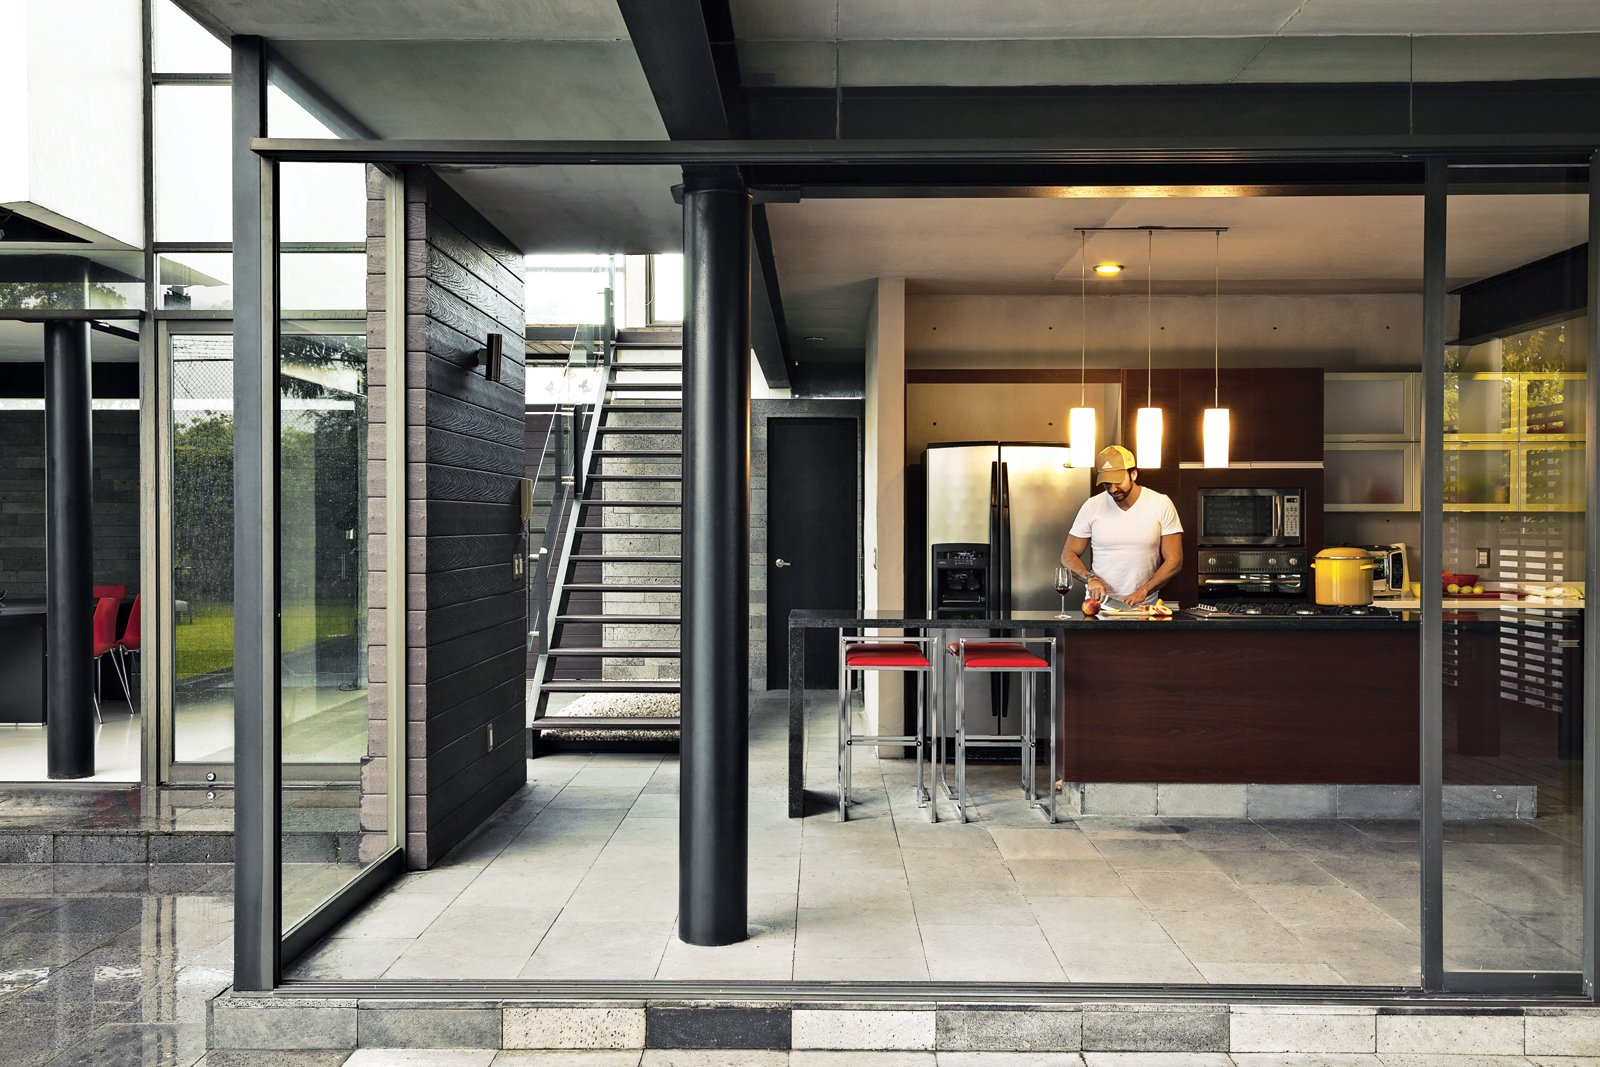 Alfredo chops away in the kitchen, which features floor-to-ceiling sliding glass walls.